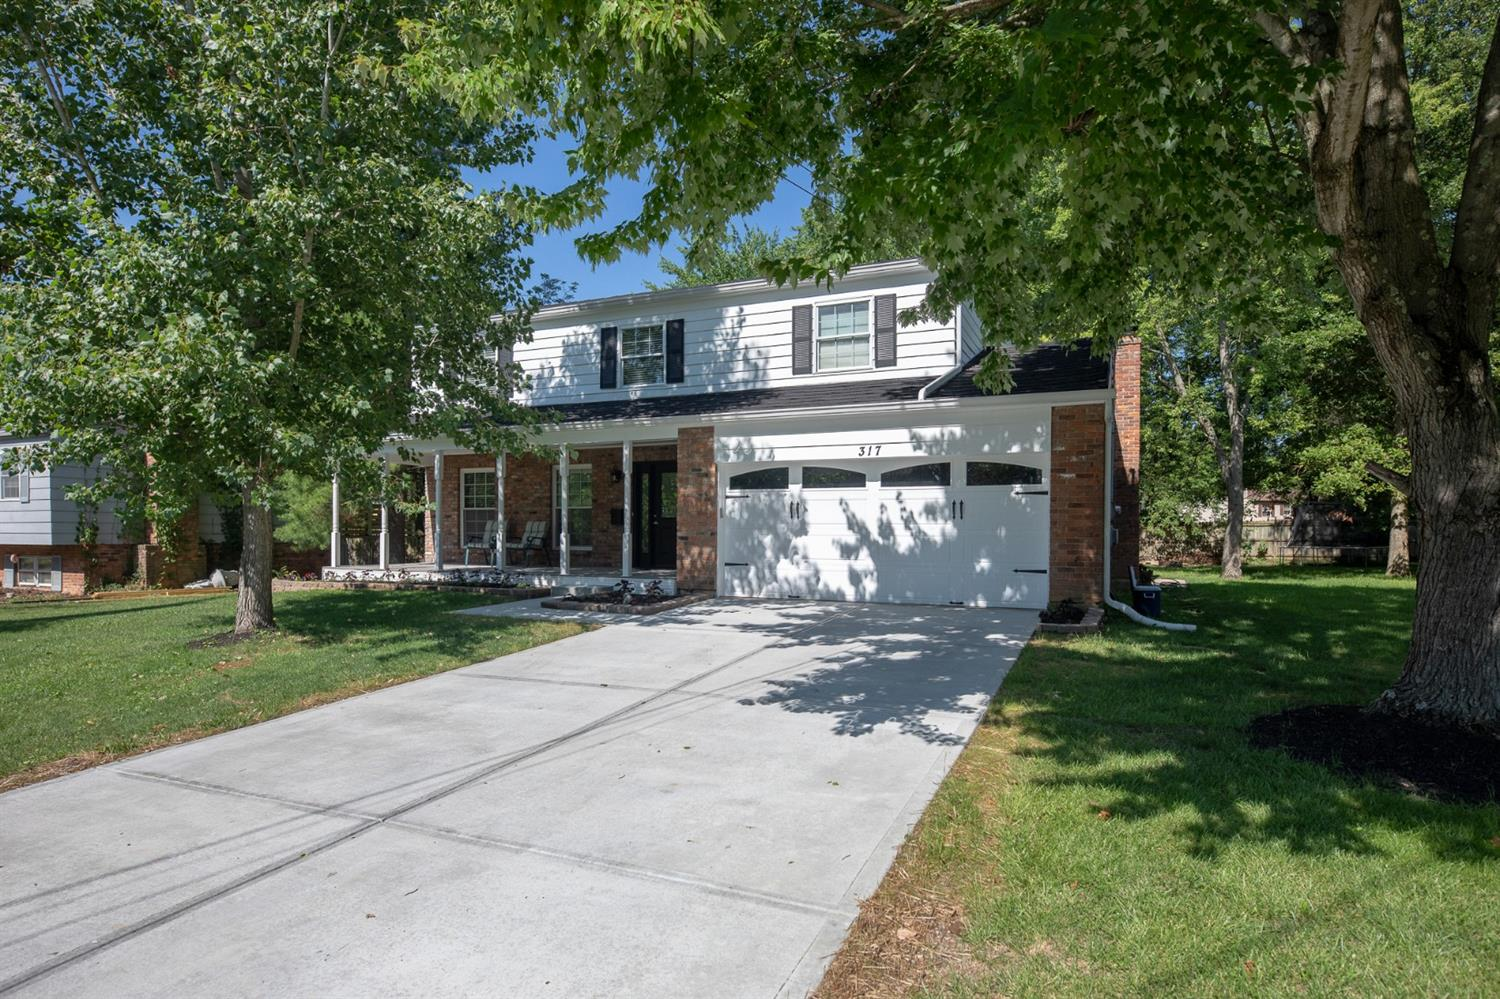 Property for sale at 317 Lycoming Street, Loveland,  Ohio 45140